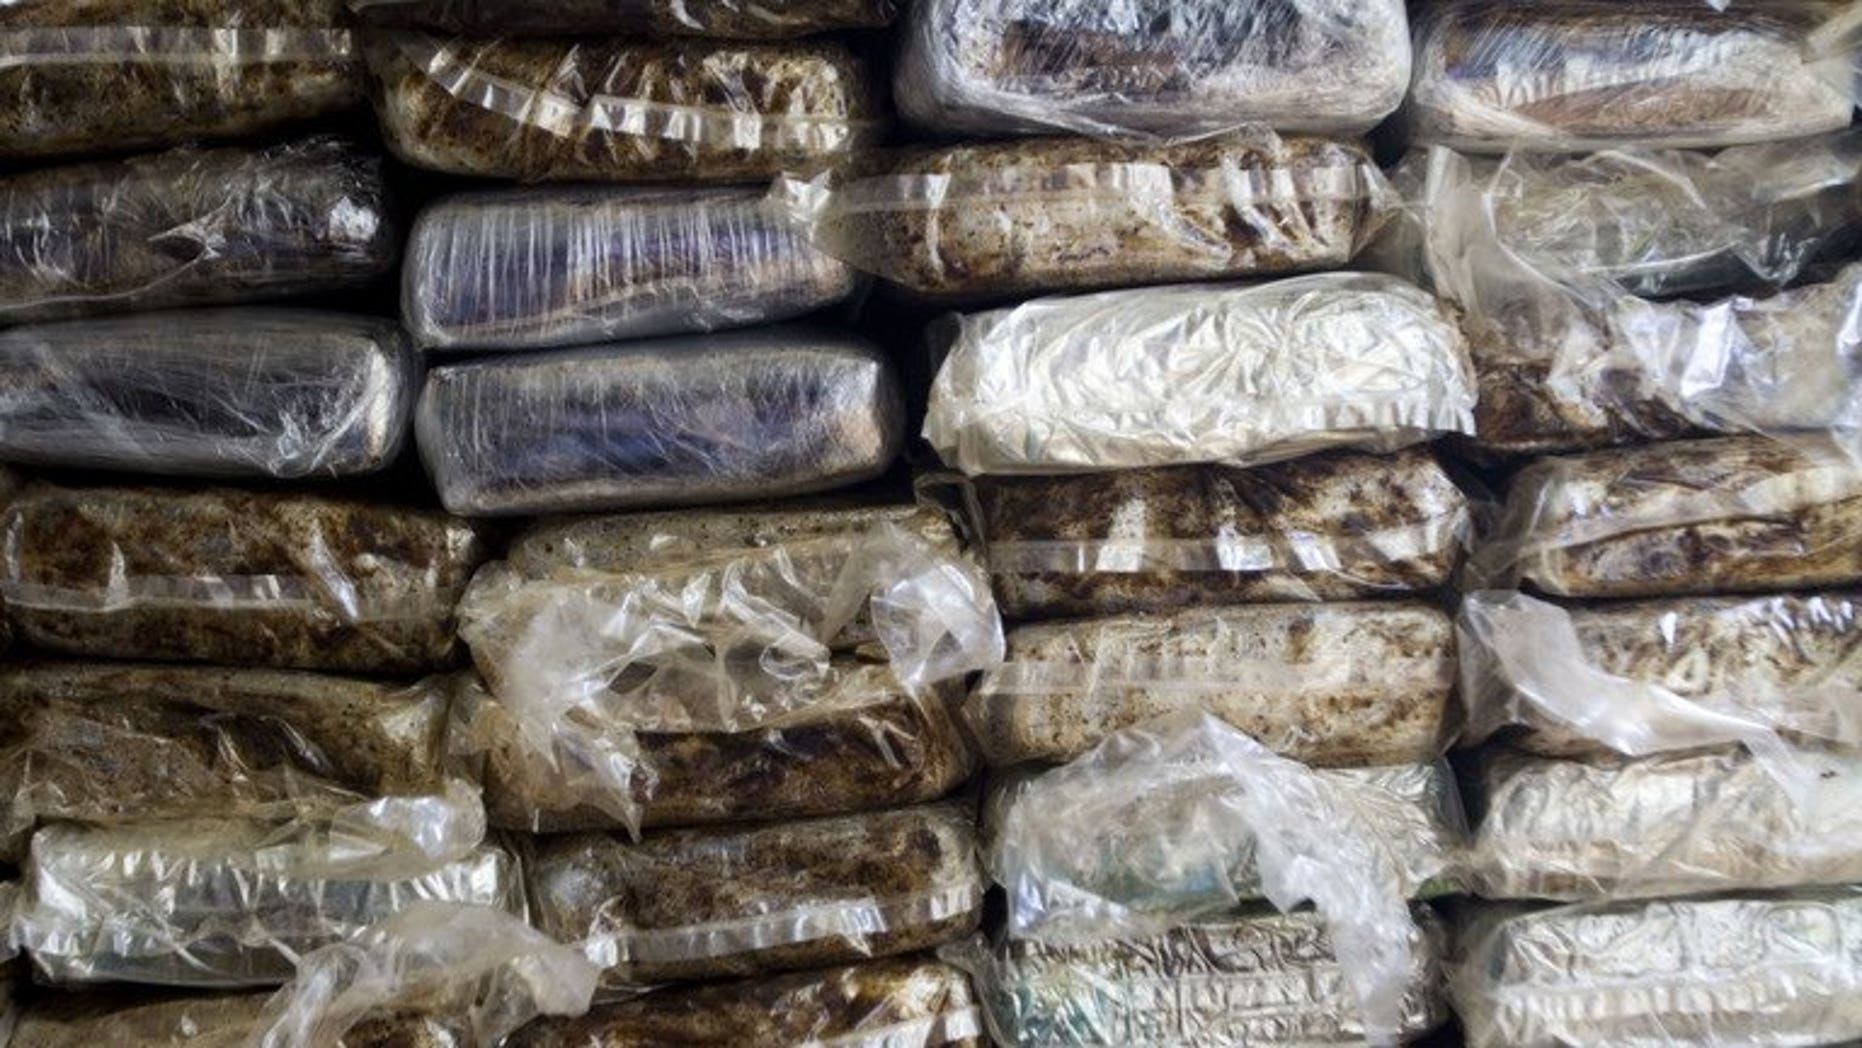 Pakistani and Belgian authorities have seized cocaine and hashish worth more than $76 million in a series of drug raids in which three foreigners were arrested, Islamabad said Friday.